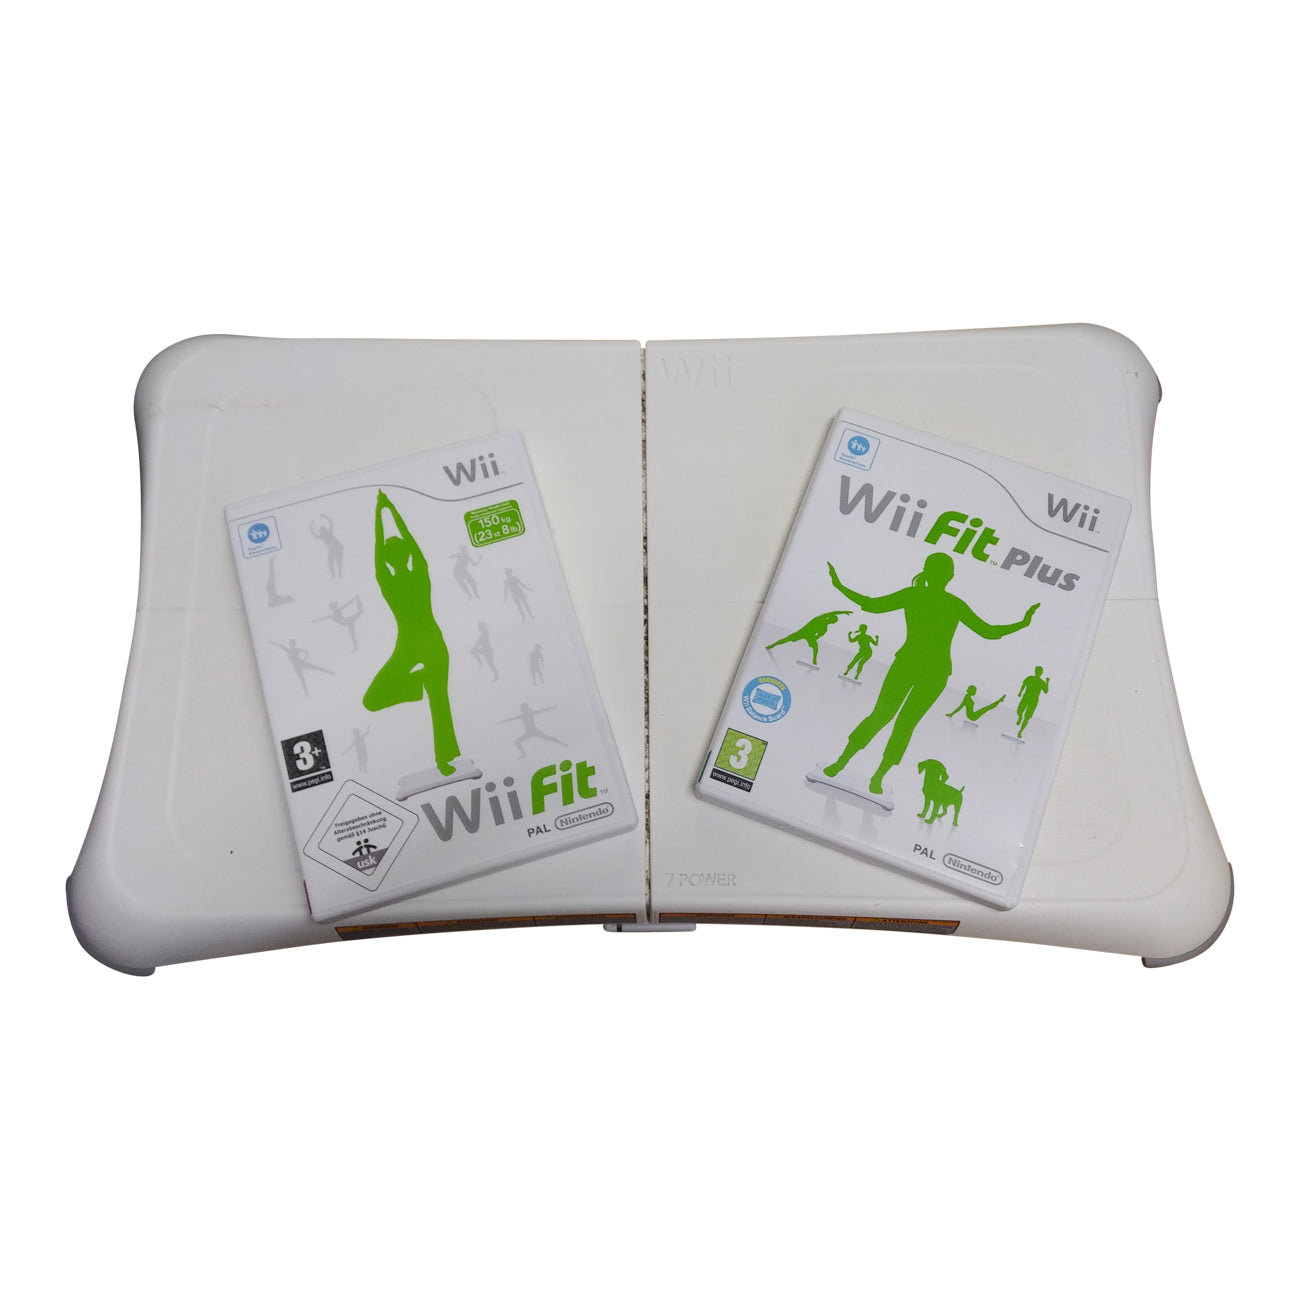 Wii Fit Board plus Wii fit plus game for Nintendo Wii +free Wii Fit game